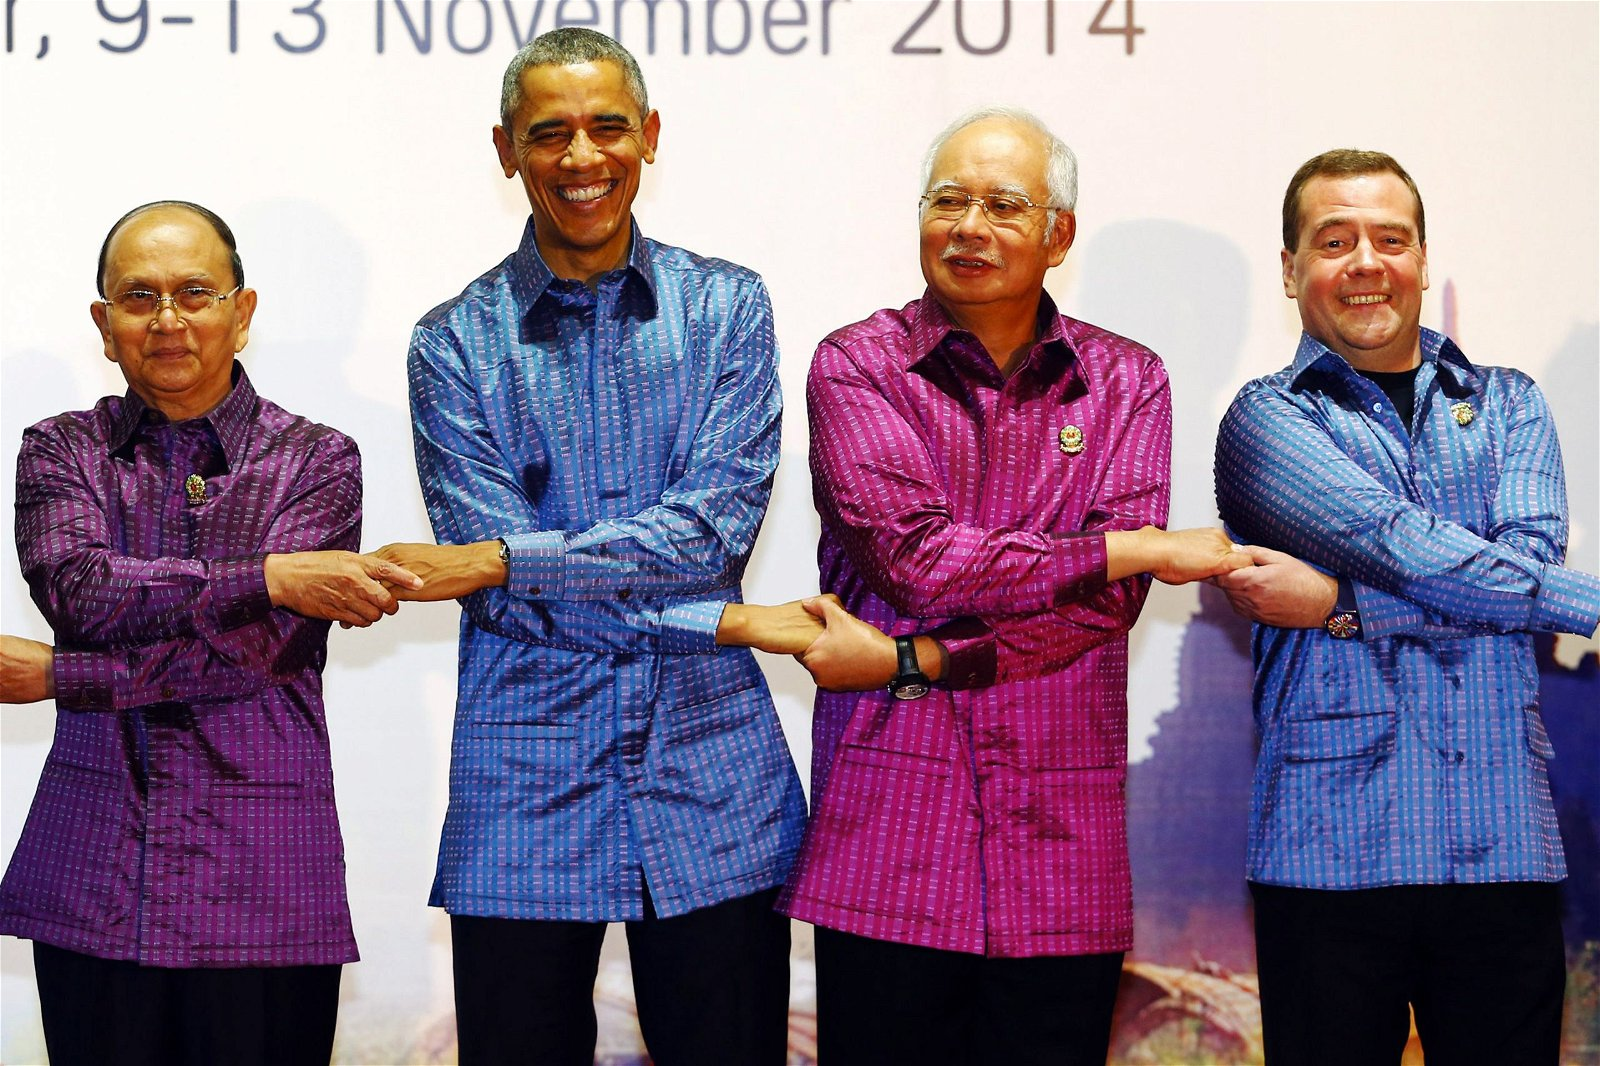 Why Southeast Asia matters to US businesses - Obama meets Thein Sein - Photo via NYPost - CC BY 2.0